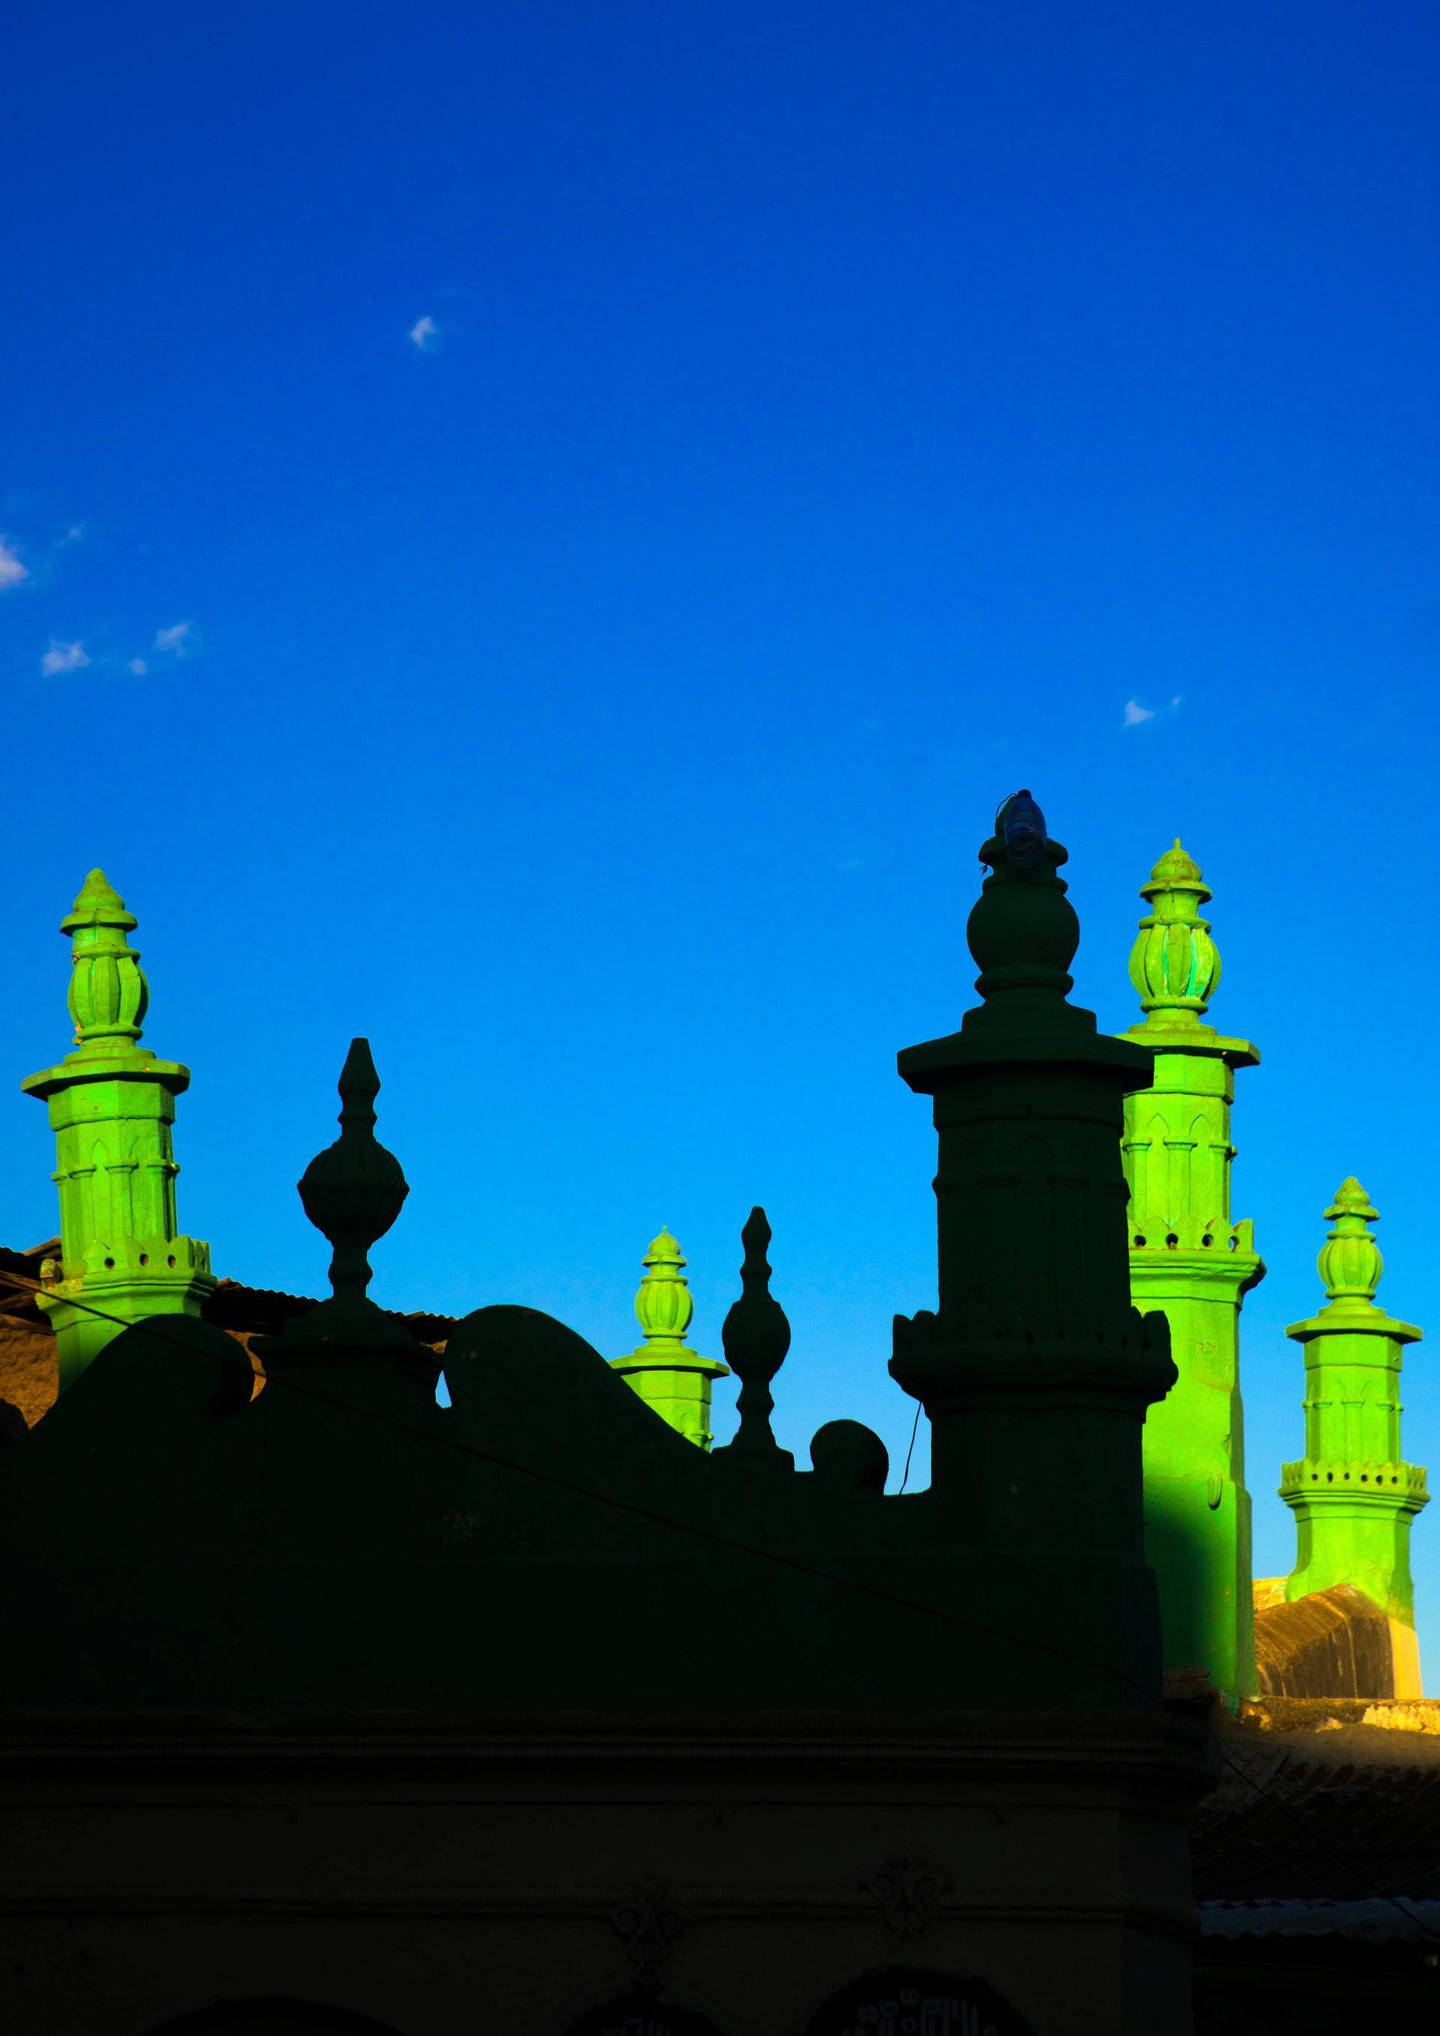 HARAR, ETHIOPIA - MARCH 04: Minarets of a mosque in the old town, harari region, harar, Ethiopia on March 4, 2016 in Harar, Ethiopia. (Photo by Eric Lafforgue/Art in All of Us/Corbis via Getty Images)